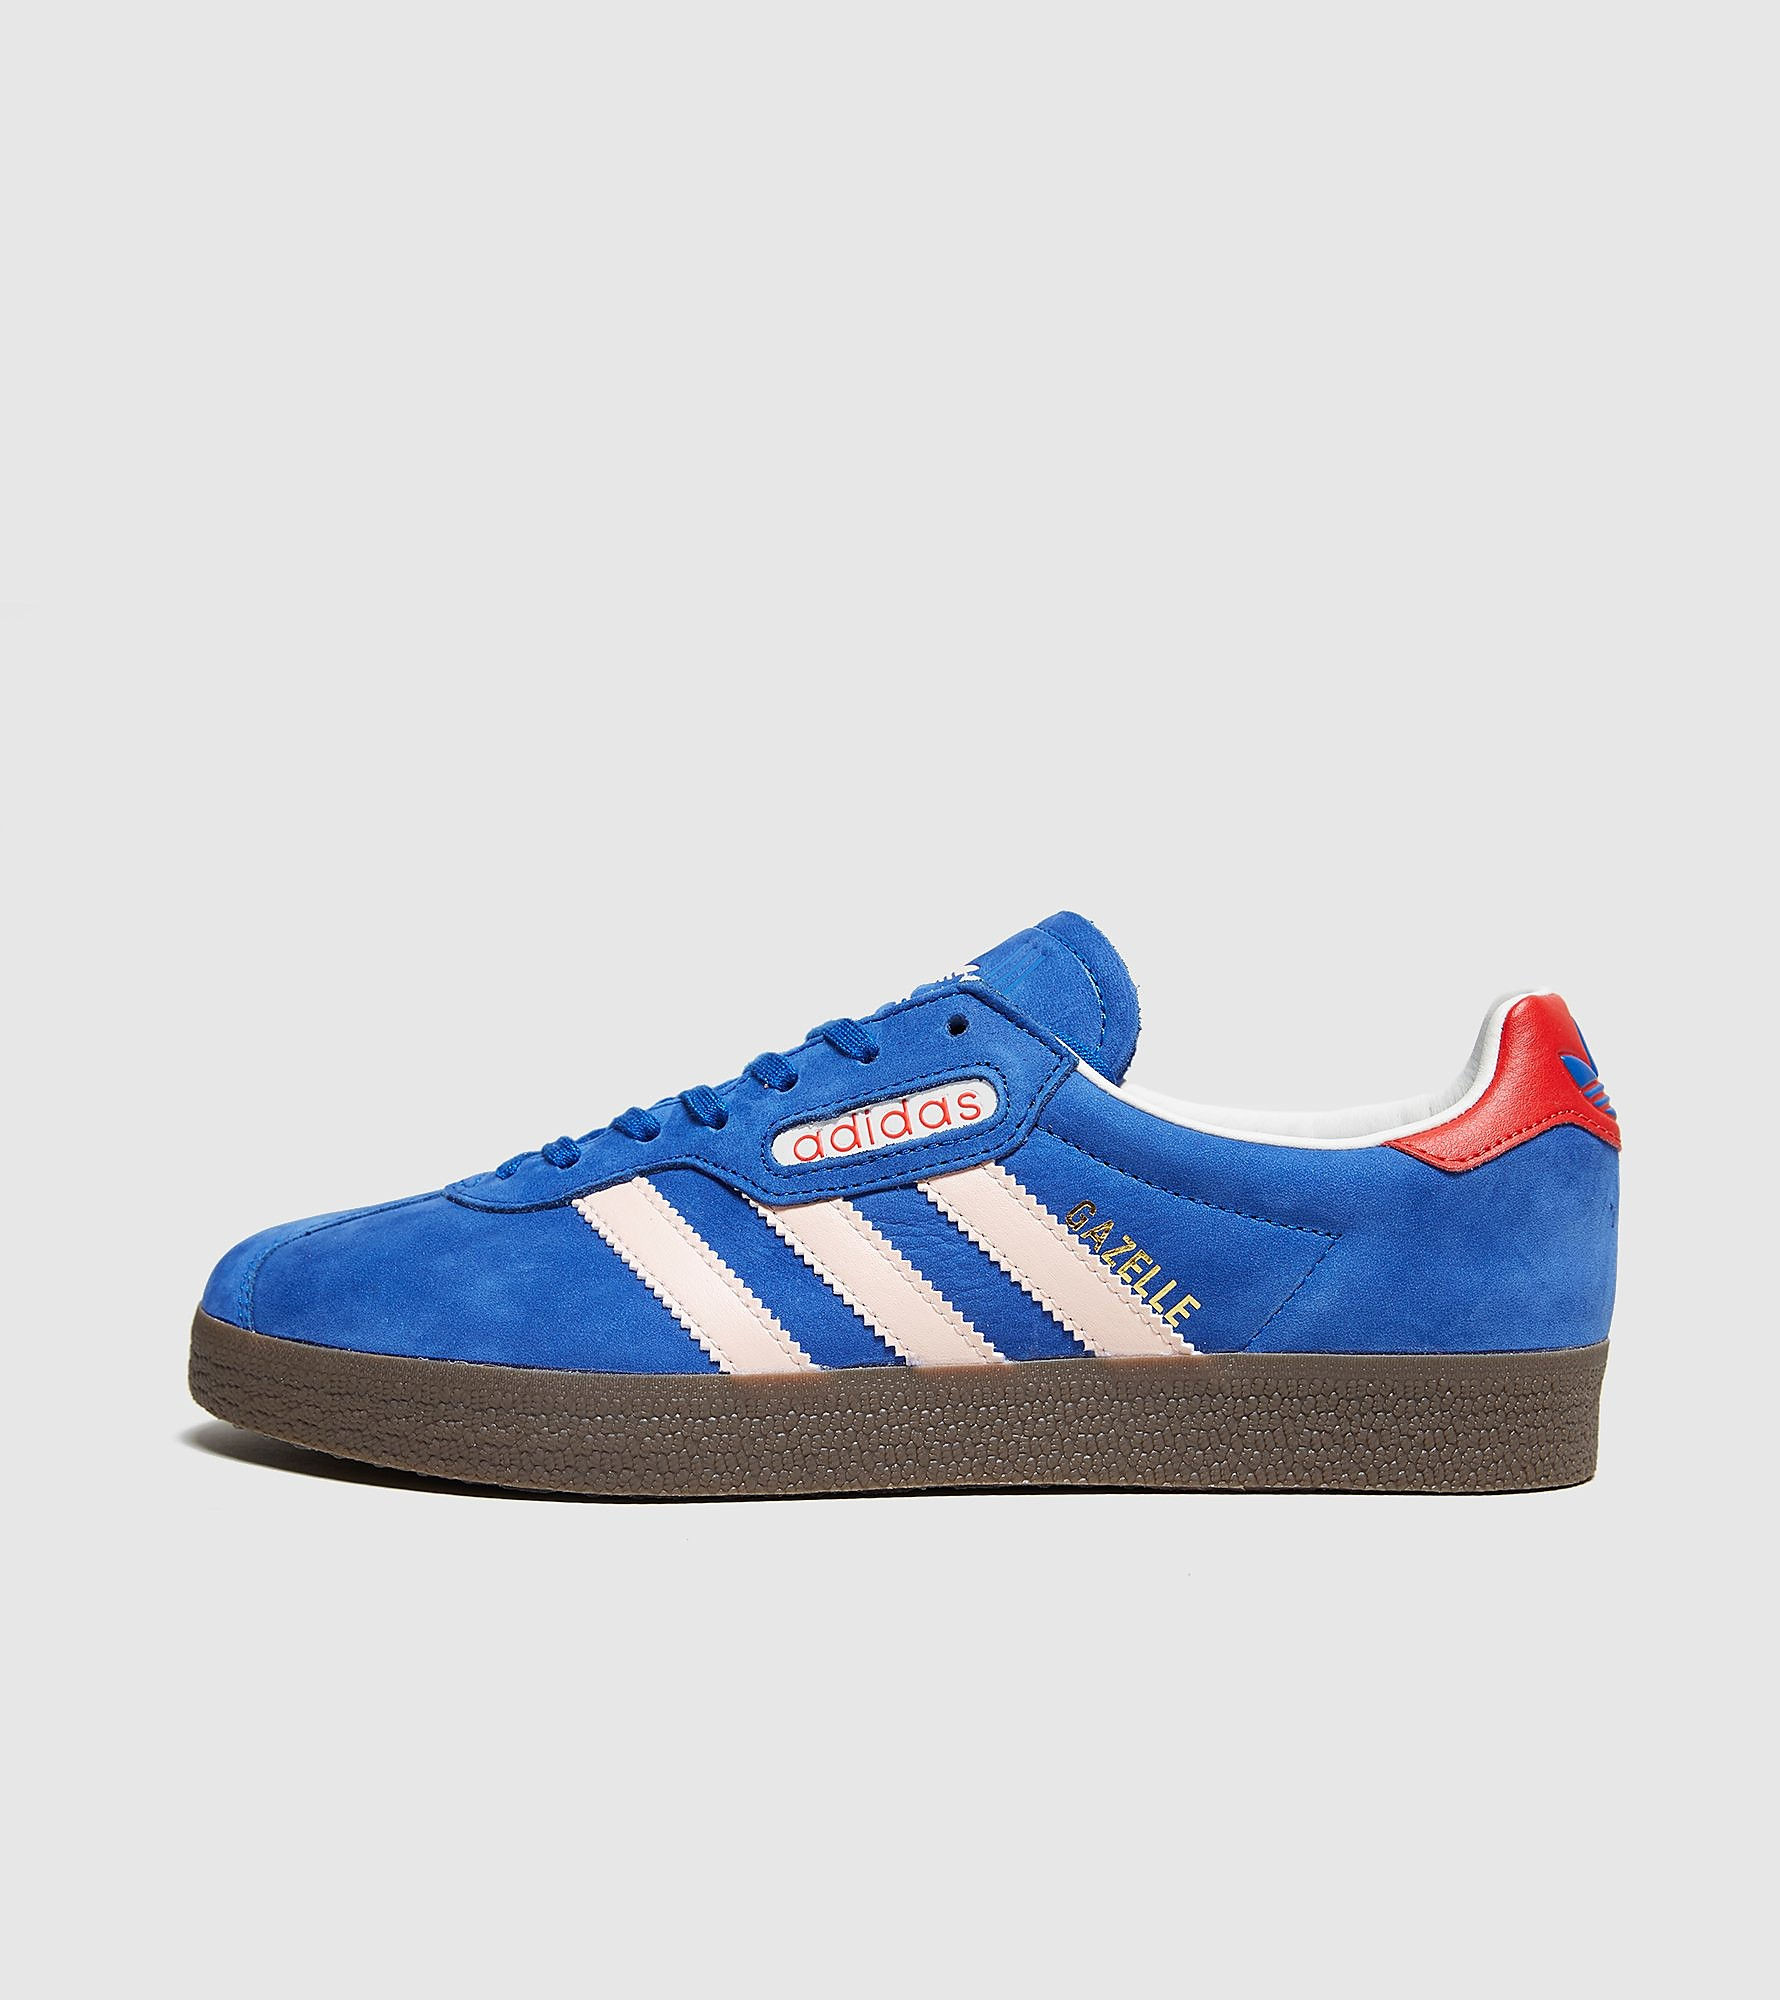 adidas Originals London to Manchester' Gazelle Super - Exclusivité size?